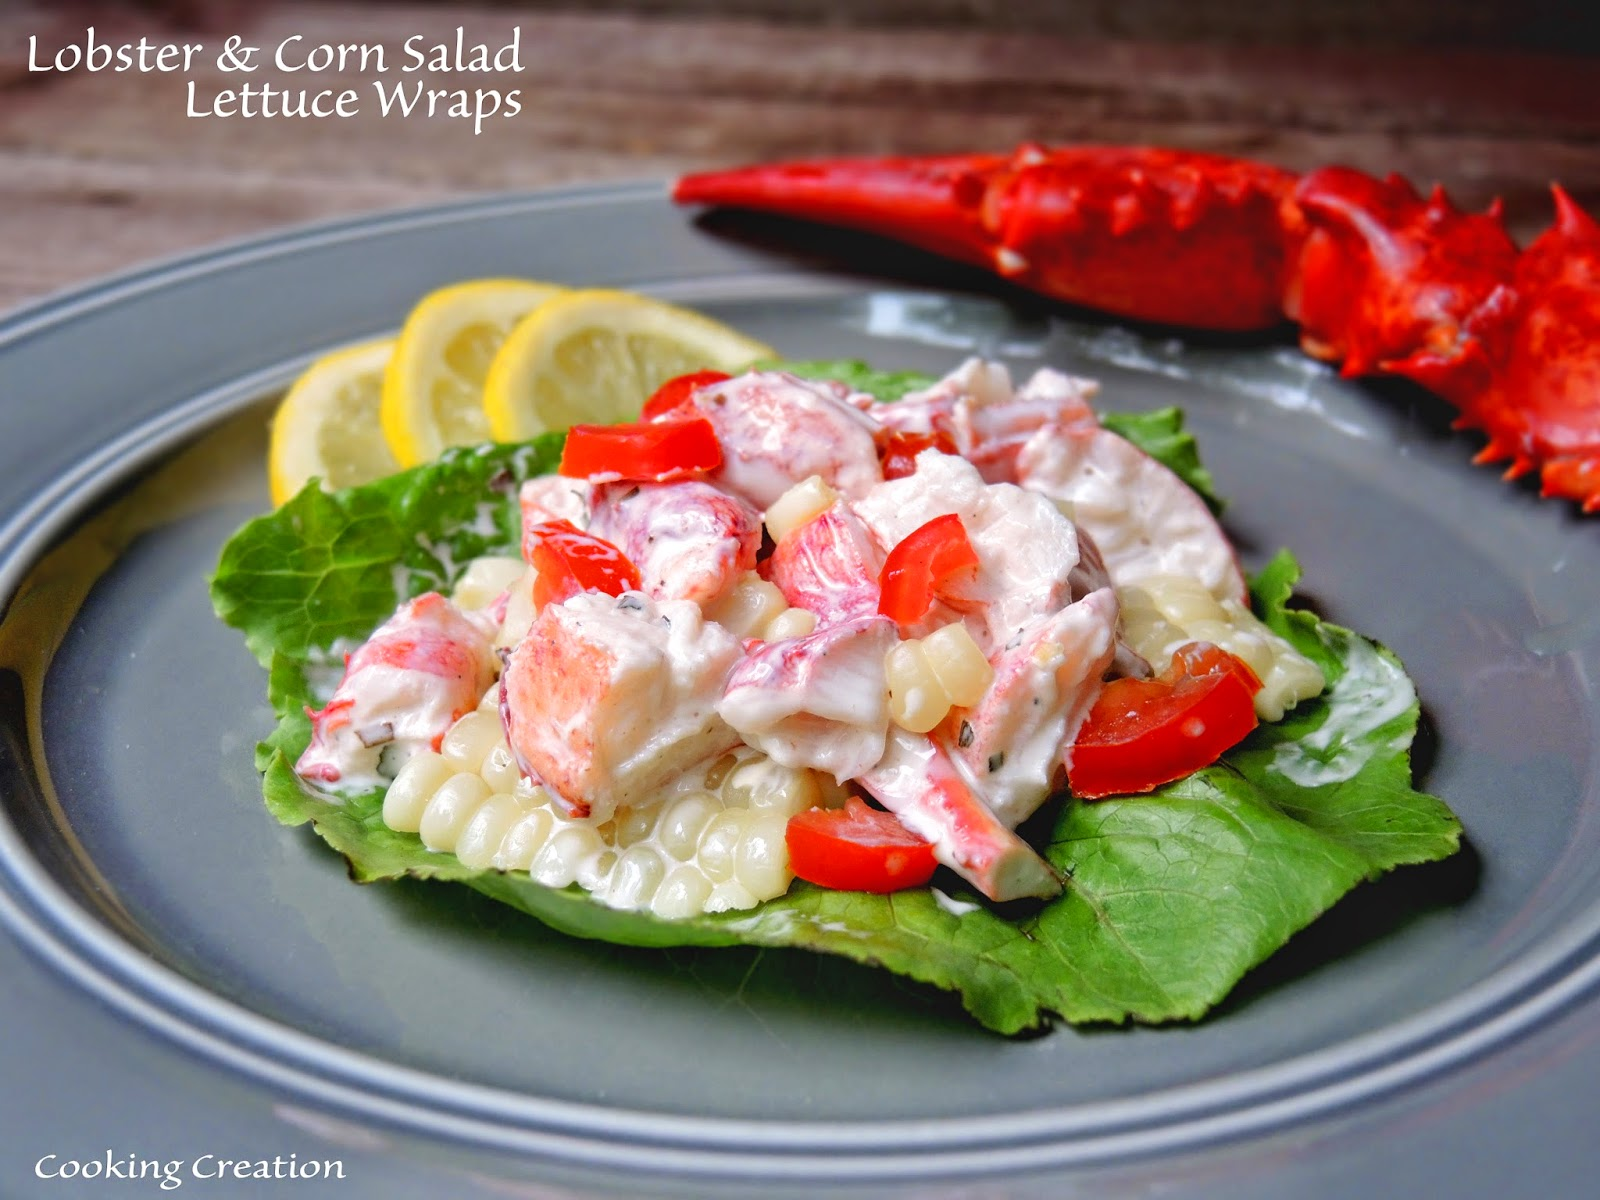 Cooking Creation: Lobster & Corn Salad Lettuce Wraps with ...